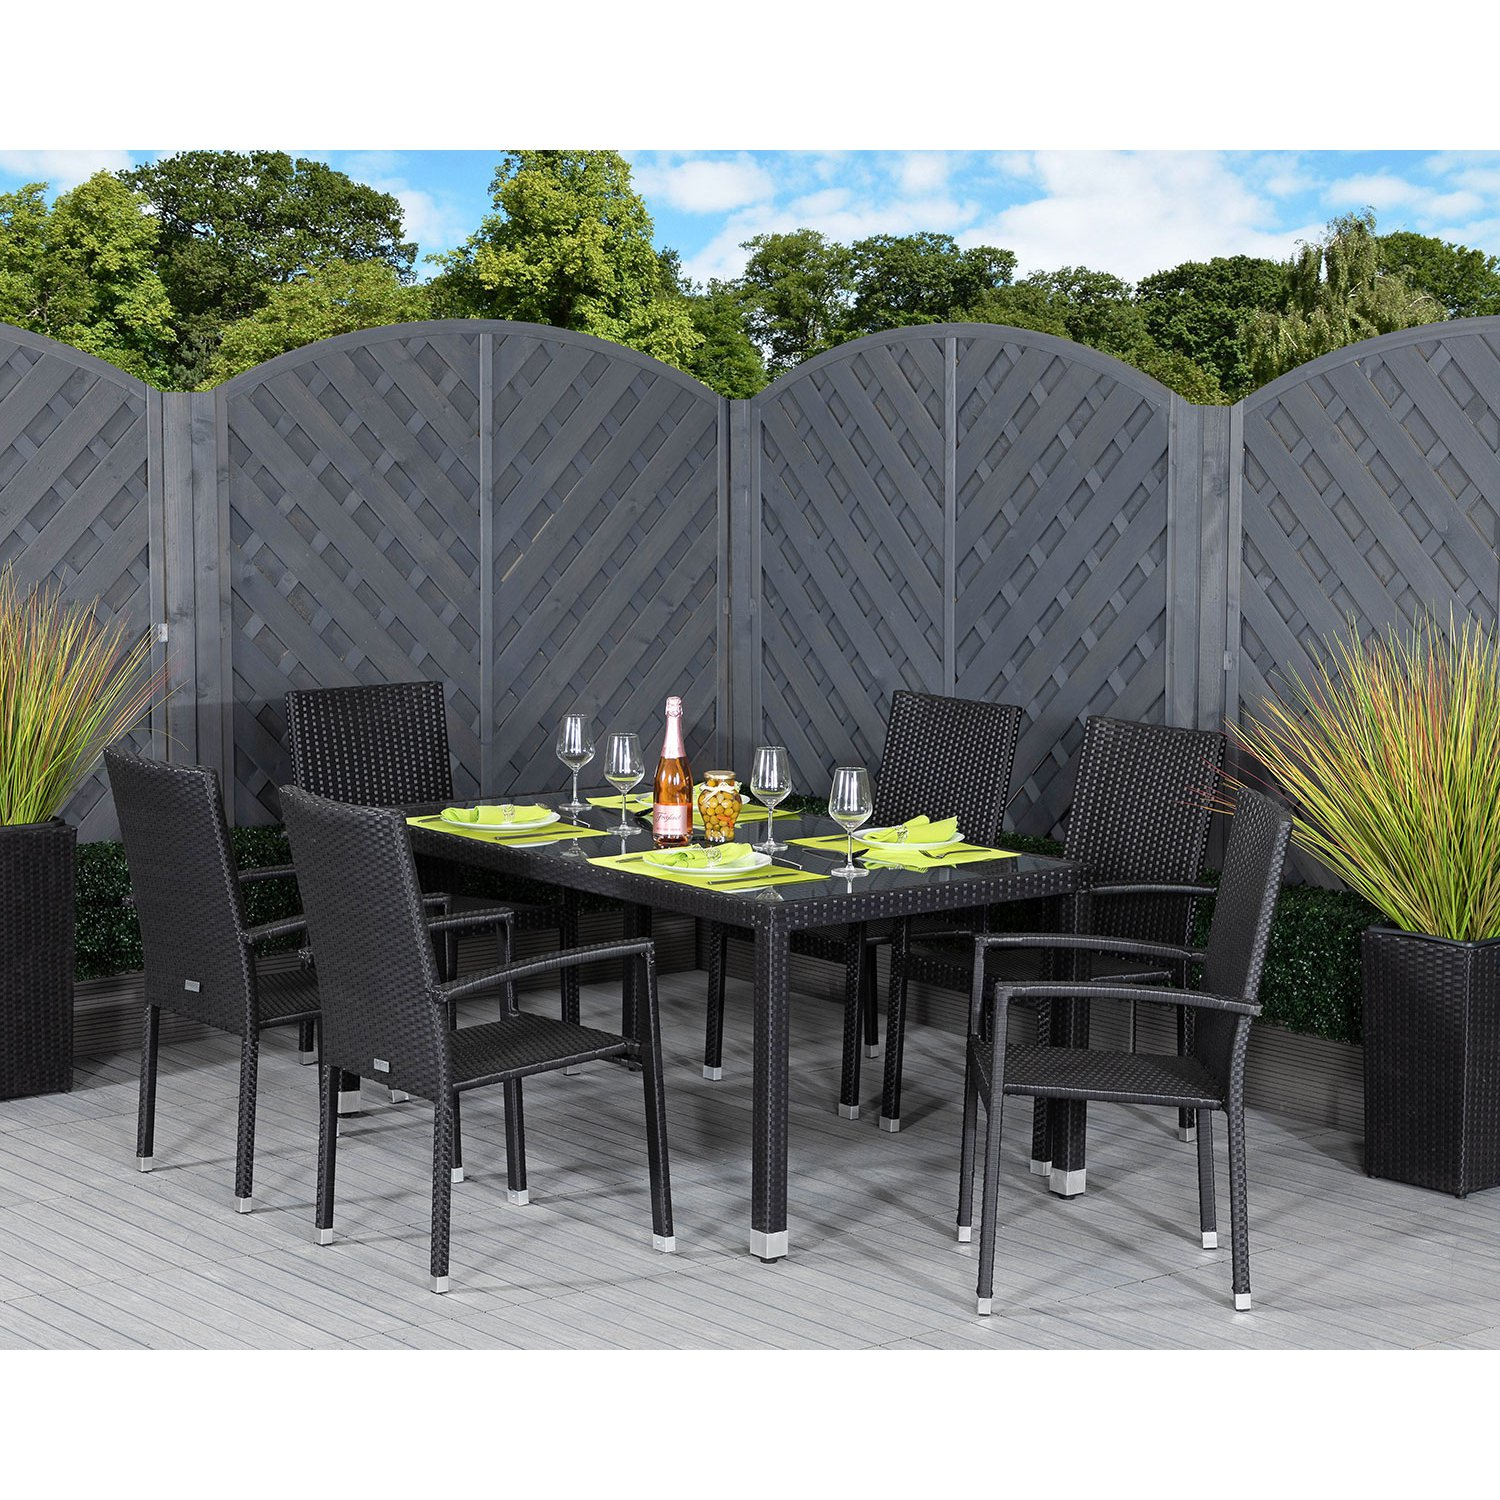 image-Rio 6 Armed Rattan Garden Chairs and Open Leg Rectangular Table Set in Black